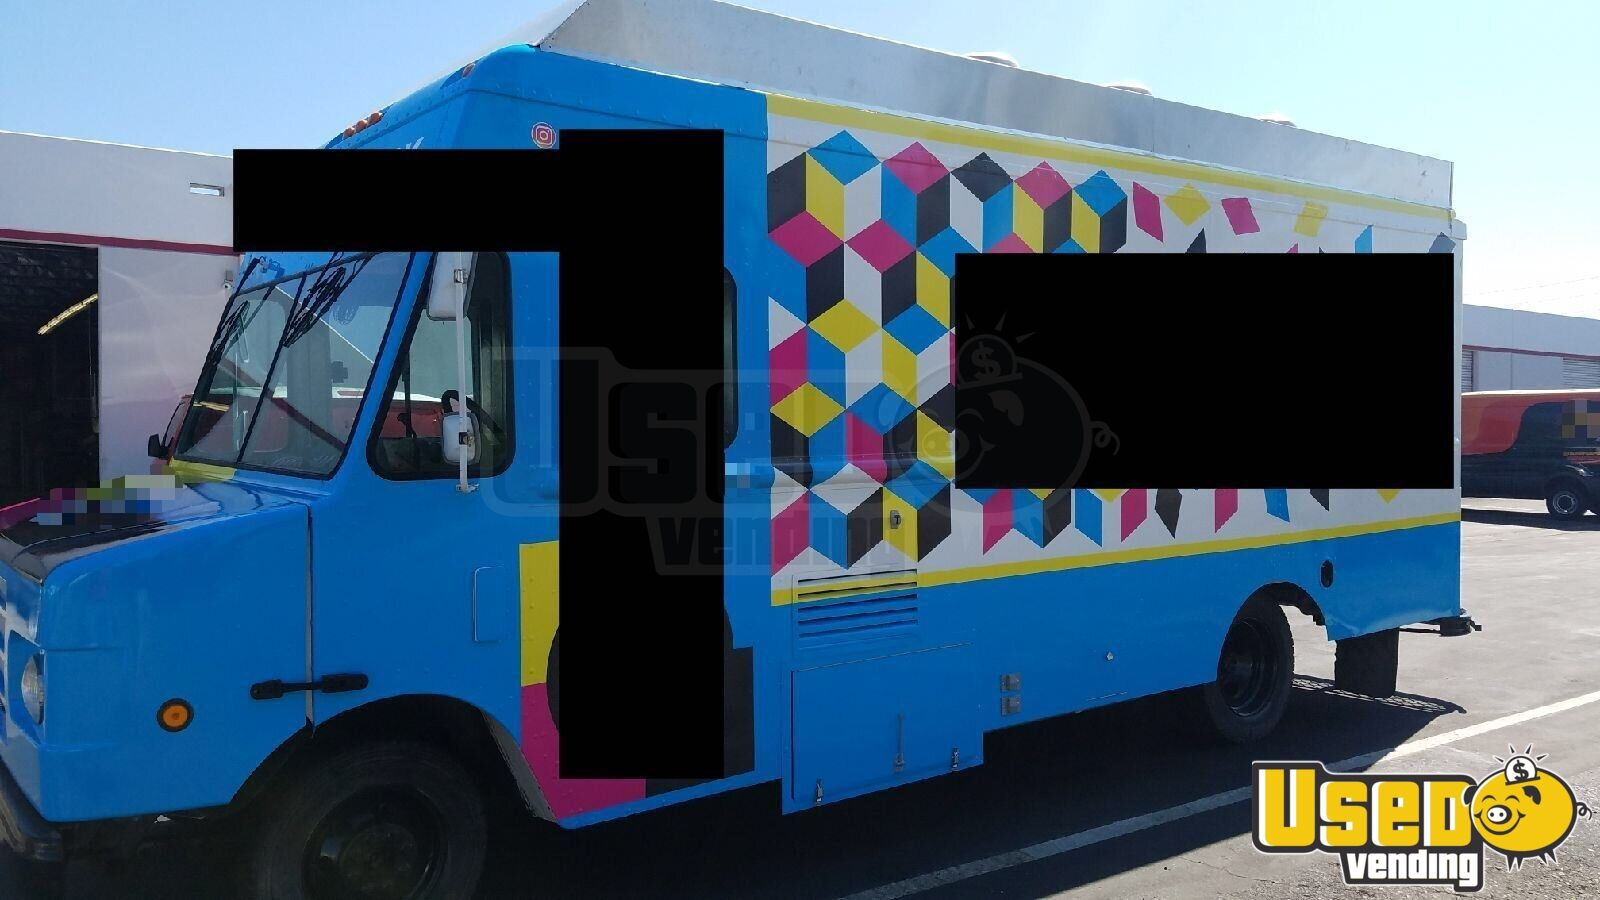 2003 Workhorse All-purpose Food Truck Concession Window California Diesel Engine for Sale - 2